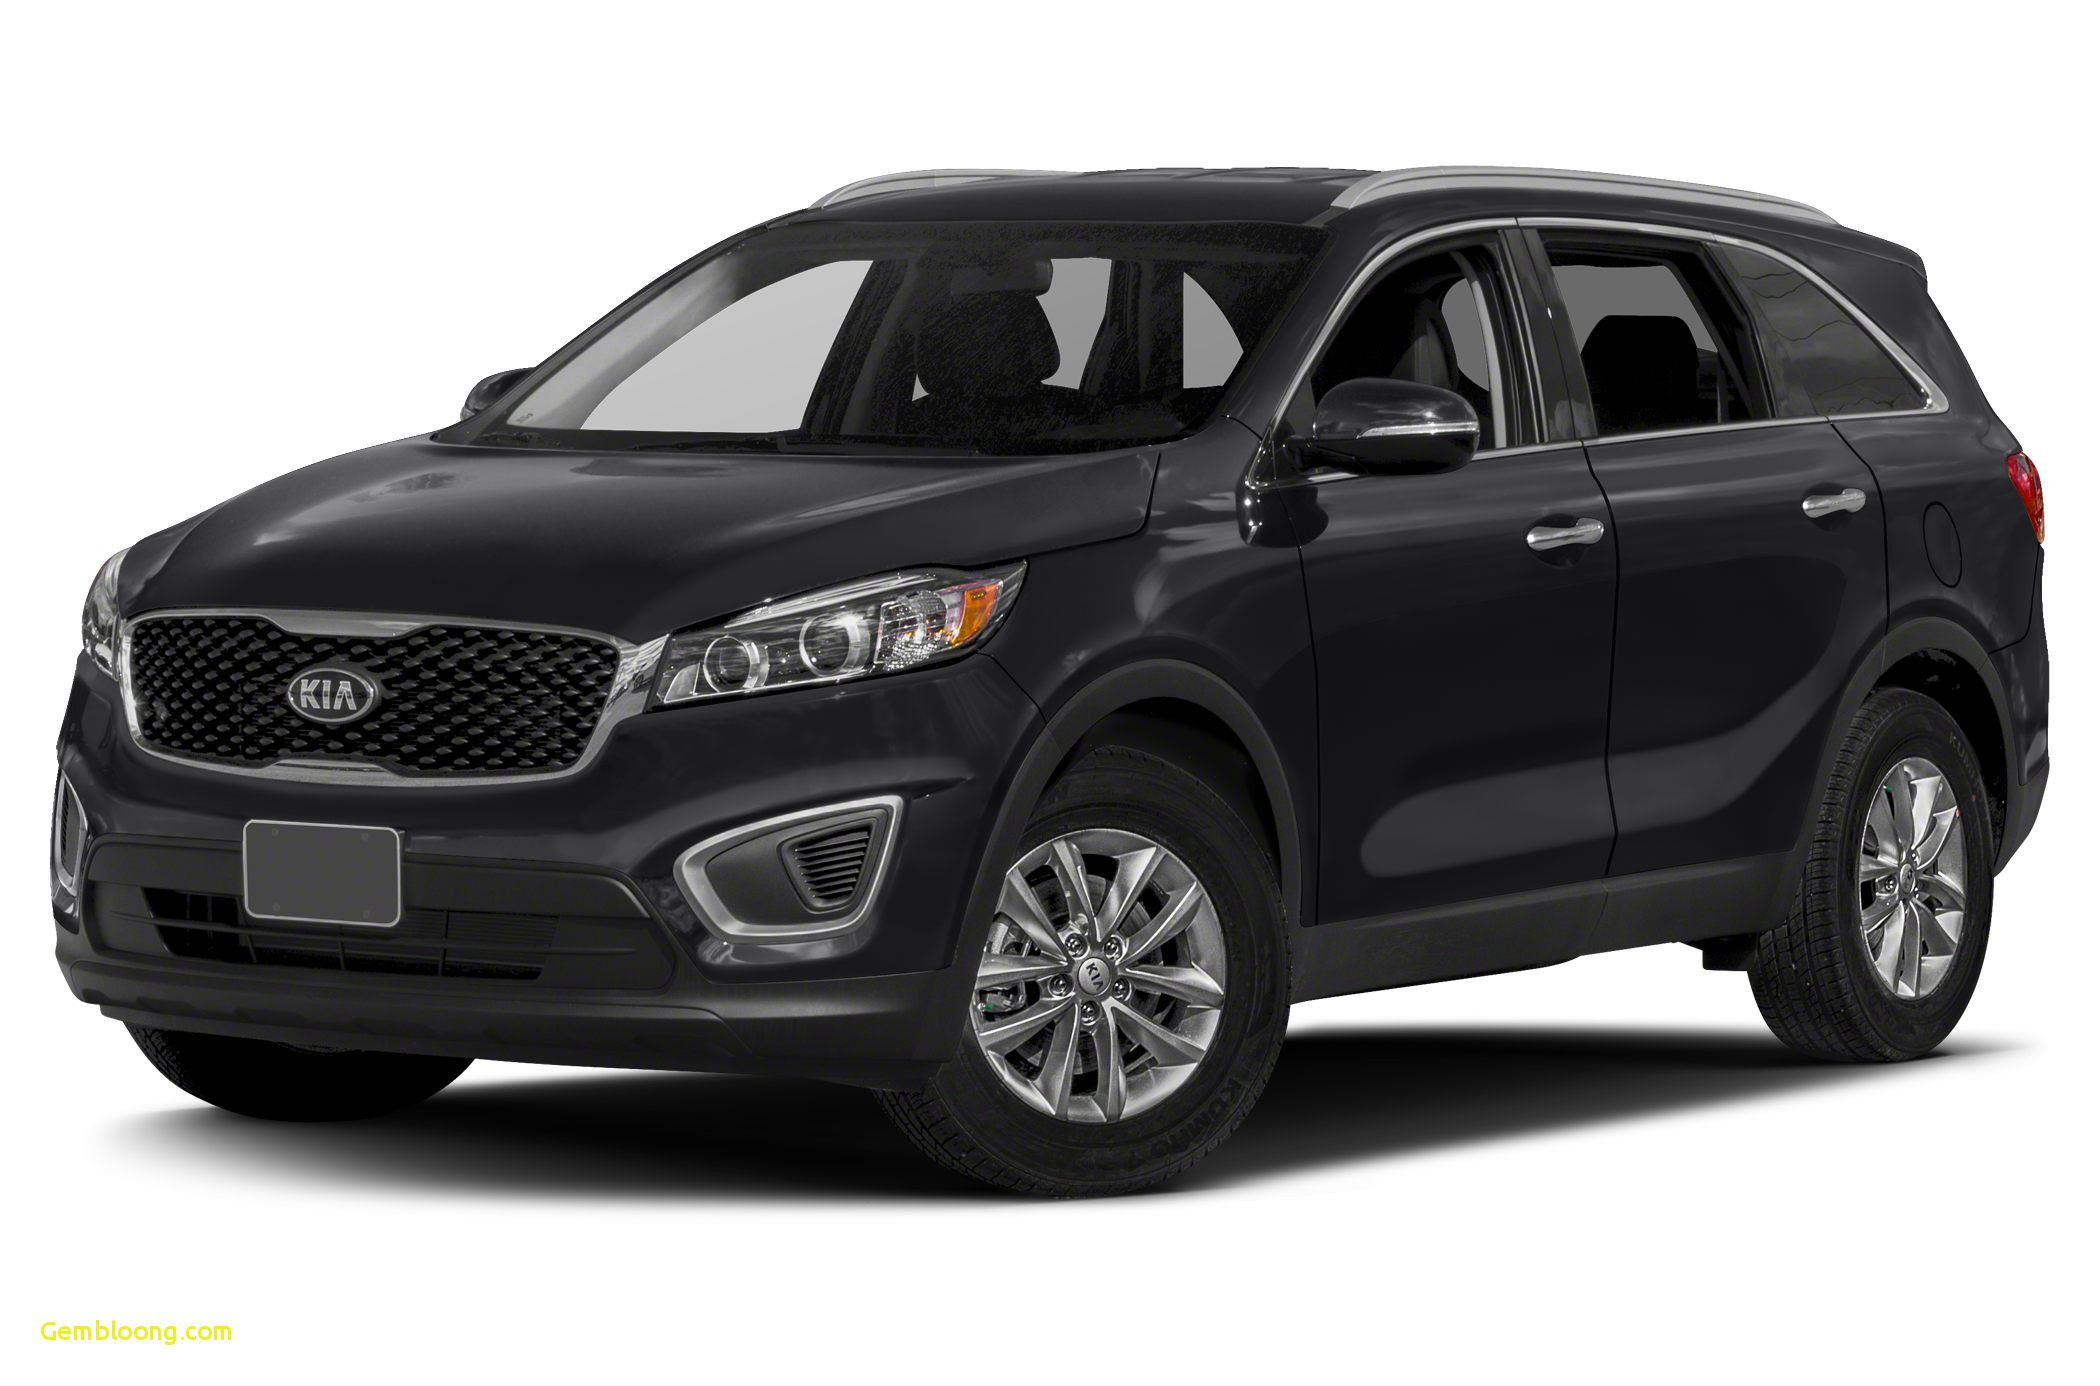 2020 Kia Sorento Check More At Http Www Autocarblog Club 2018 03 07 2020 Kia Sorento